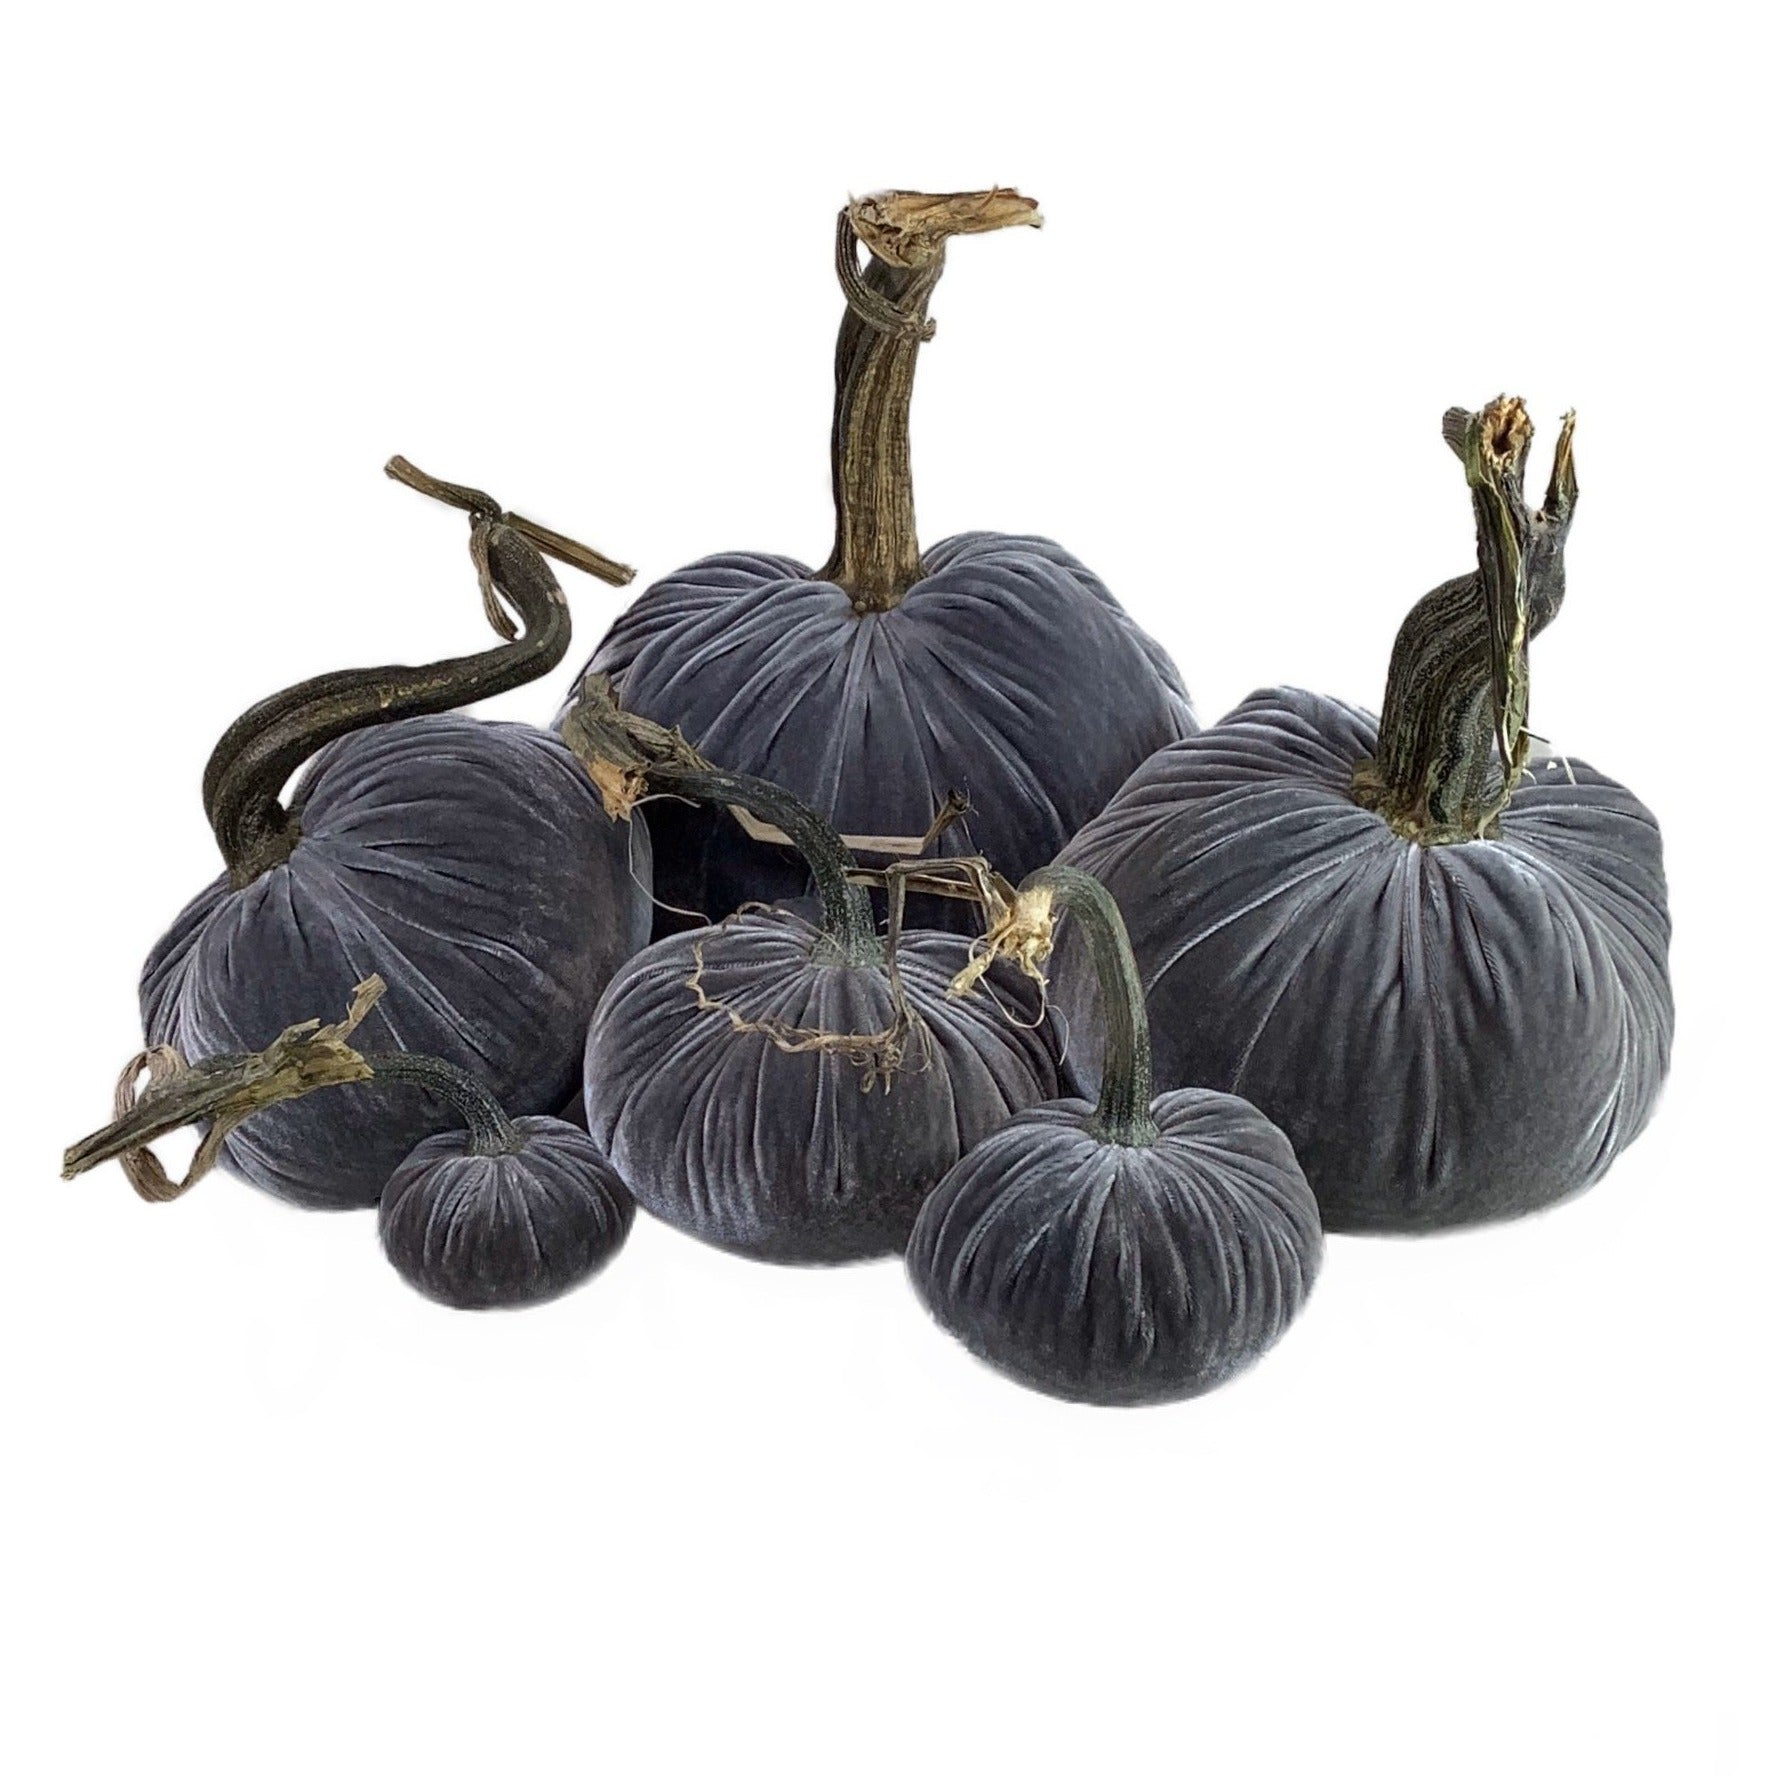 Velvet Decorative Pumpkin in Grey